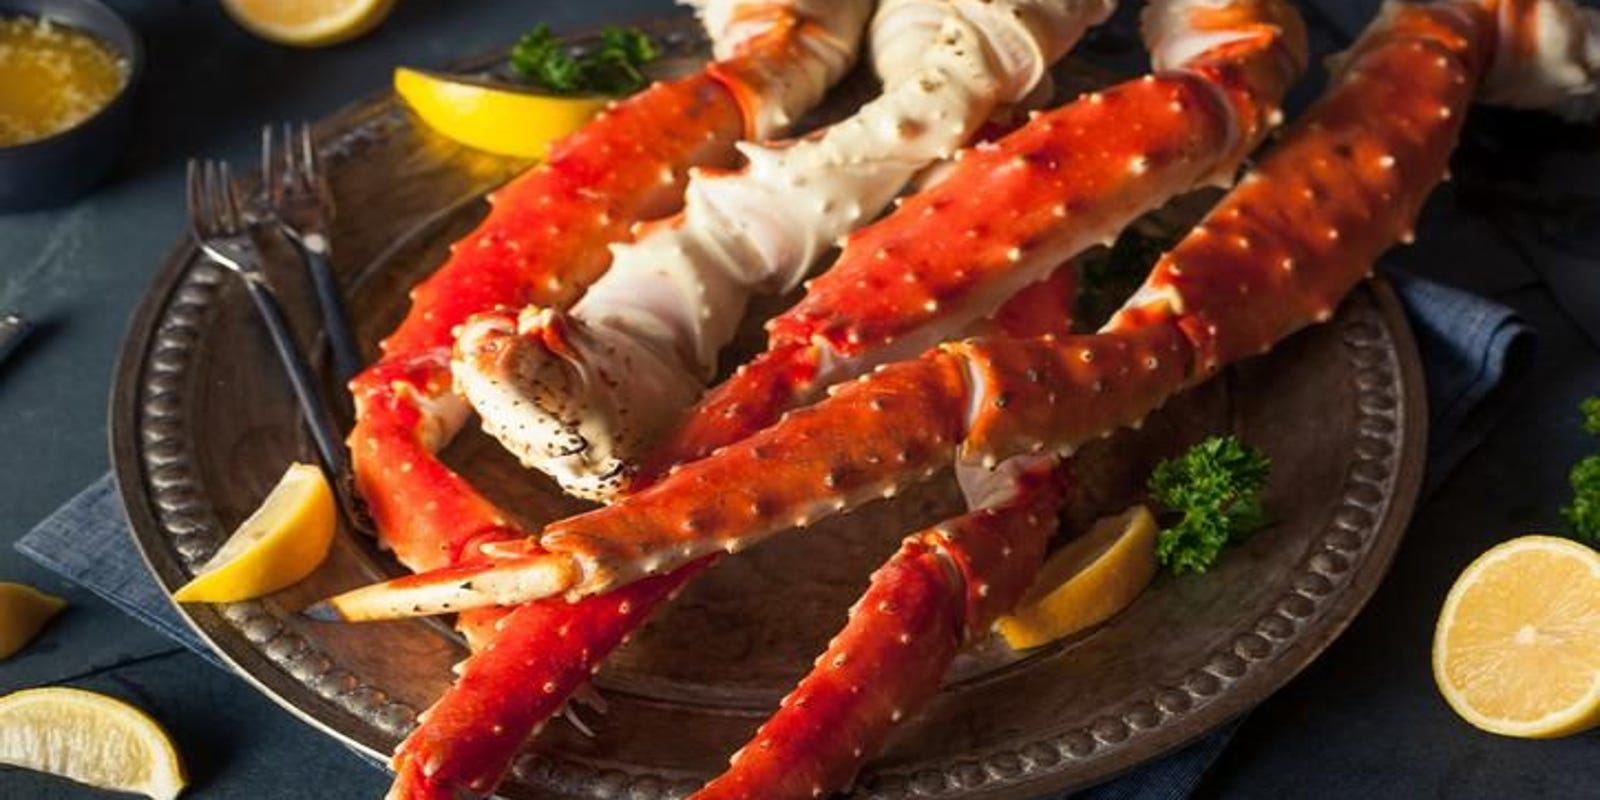 Blue crab and crawfish: Crab du Jour seafood restaurant coming to former Applebee's